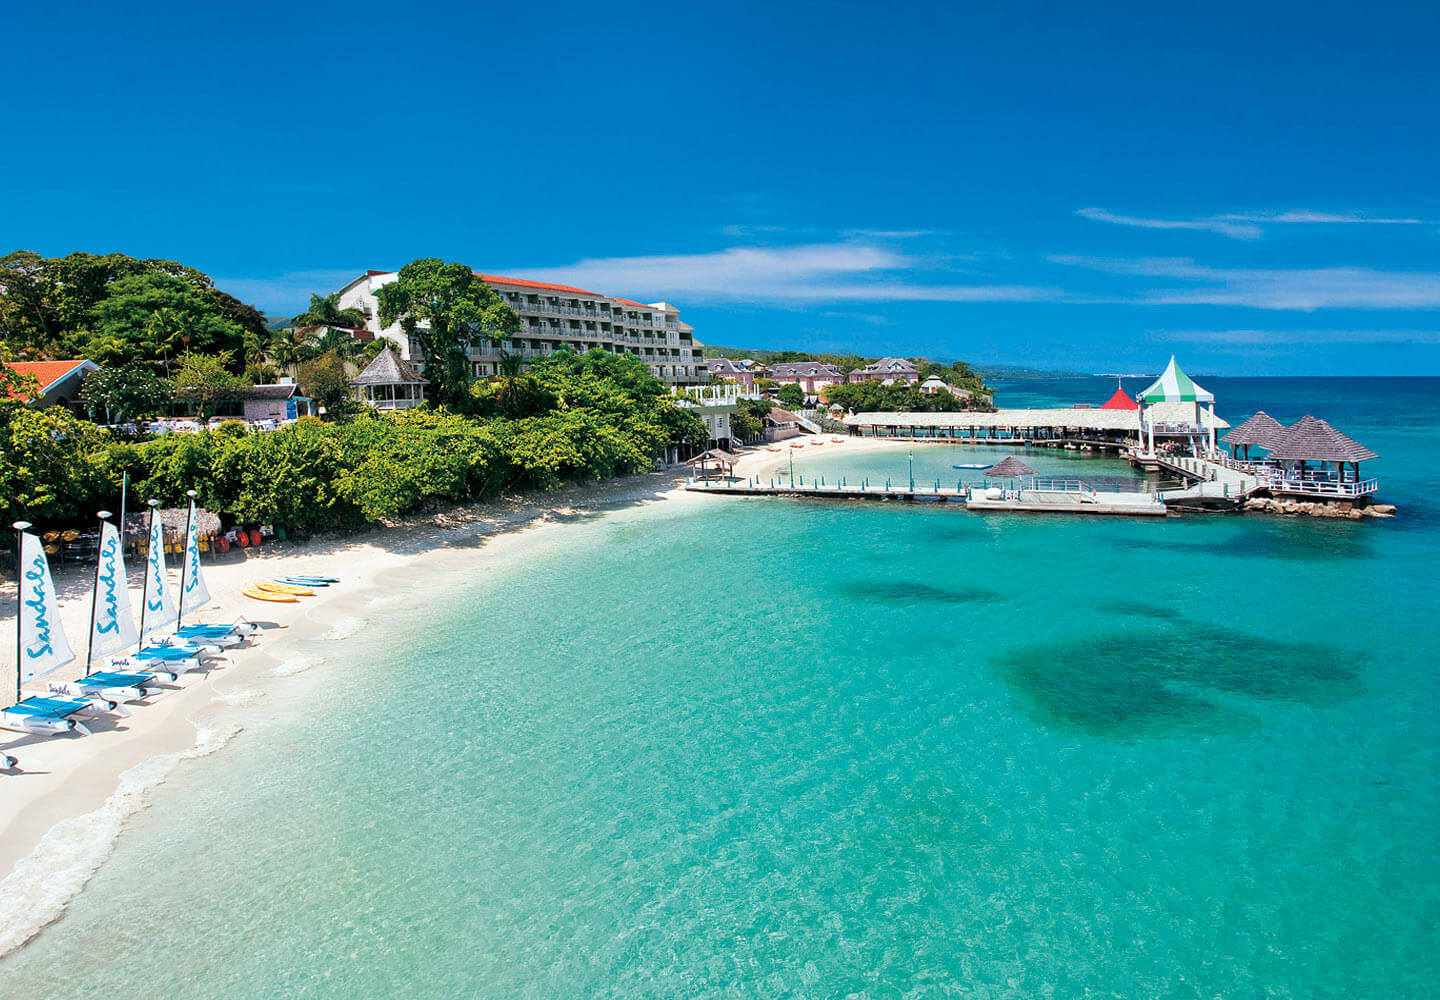 Sandals Ochi Beach Resort - Honeymoons